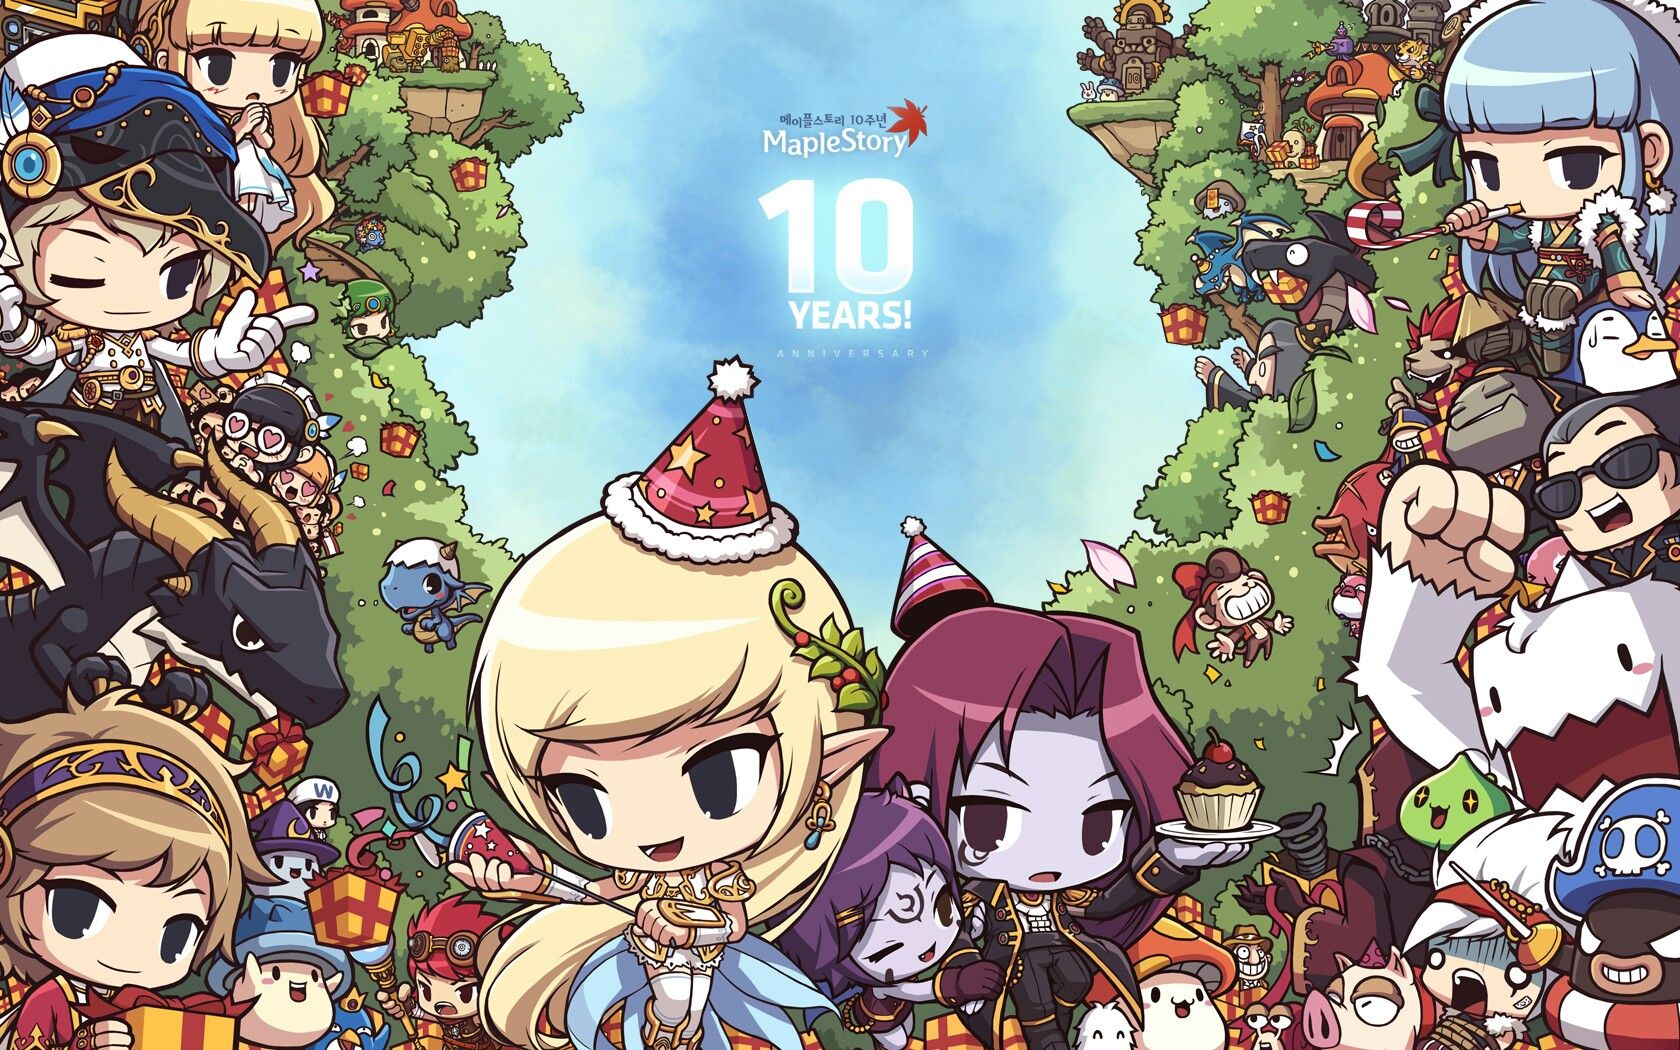 Maplestory 10th Illust Maple Story Chibi Anime